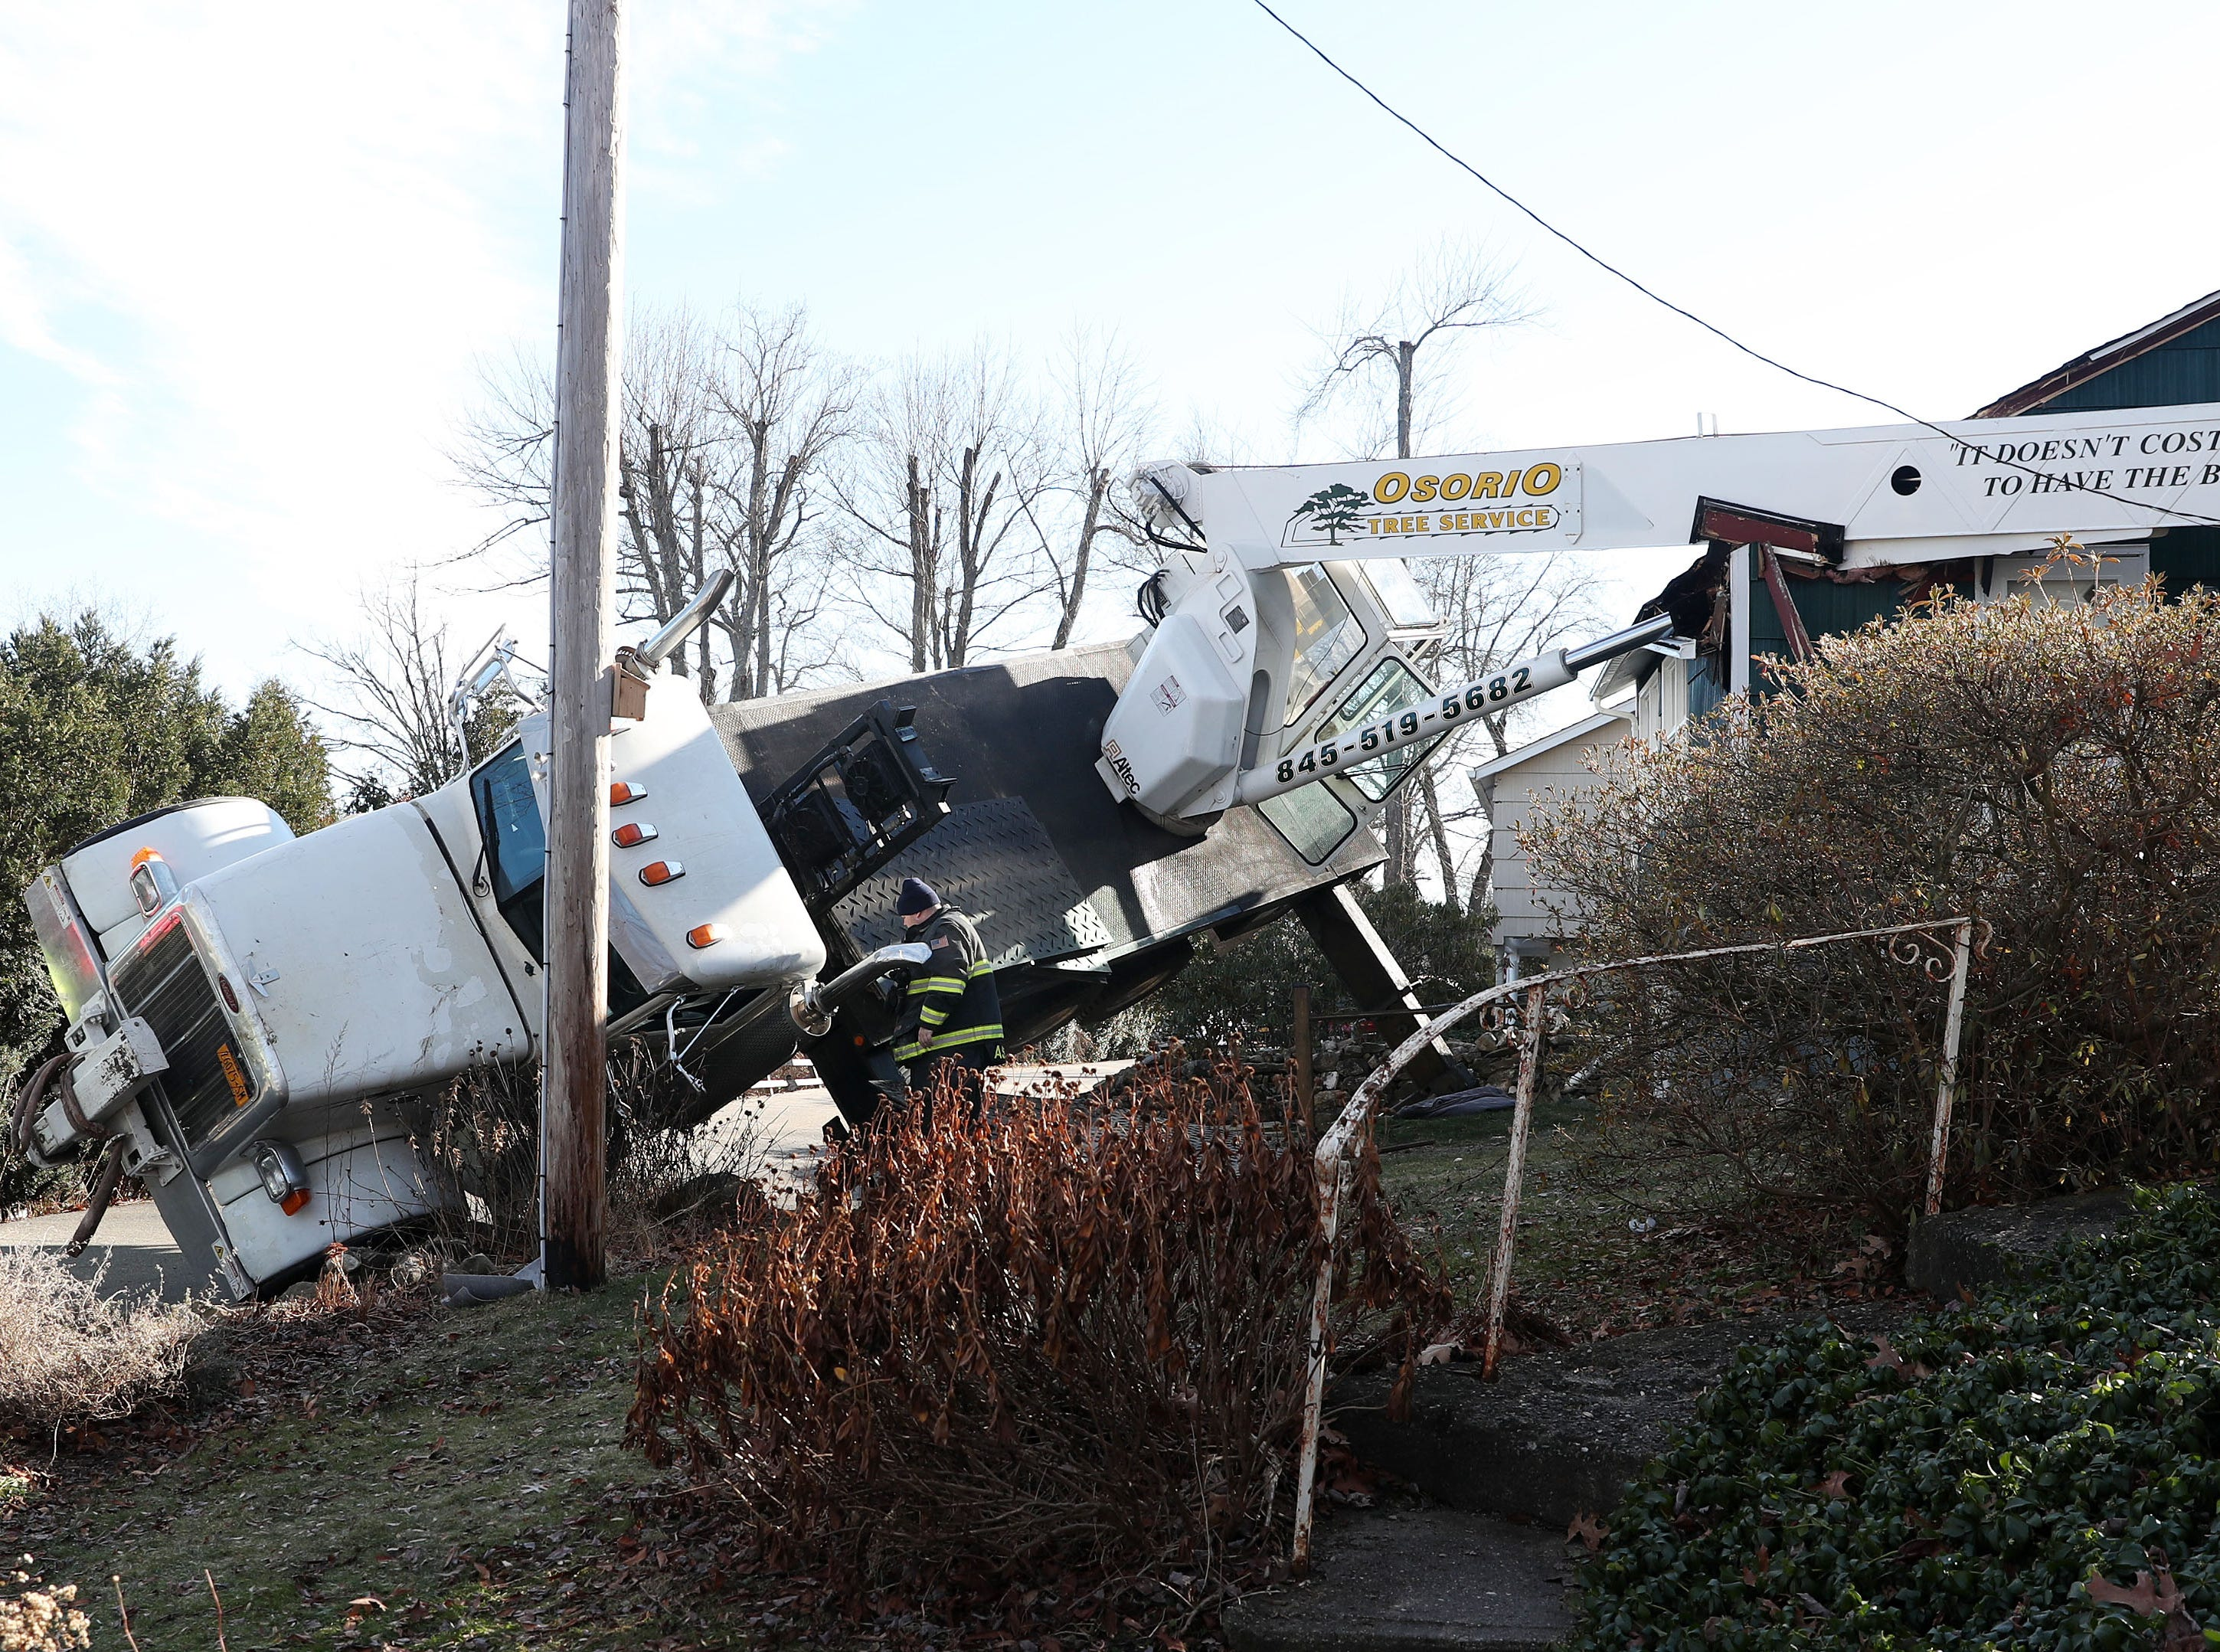 A boom truck crane tipped over while removing a large tree from behind a home at 45 Lakeside Drive in North Salem Dec. 5, 2018. There were no injuries.